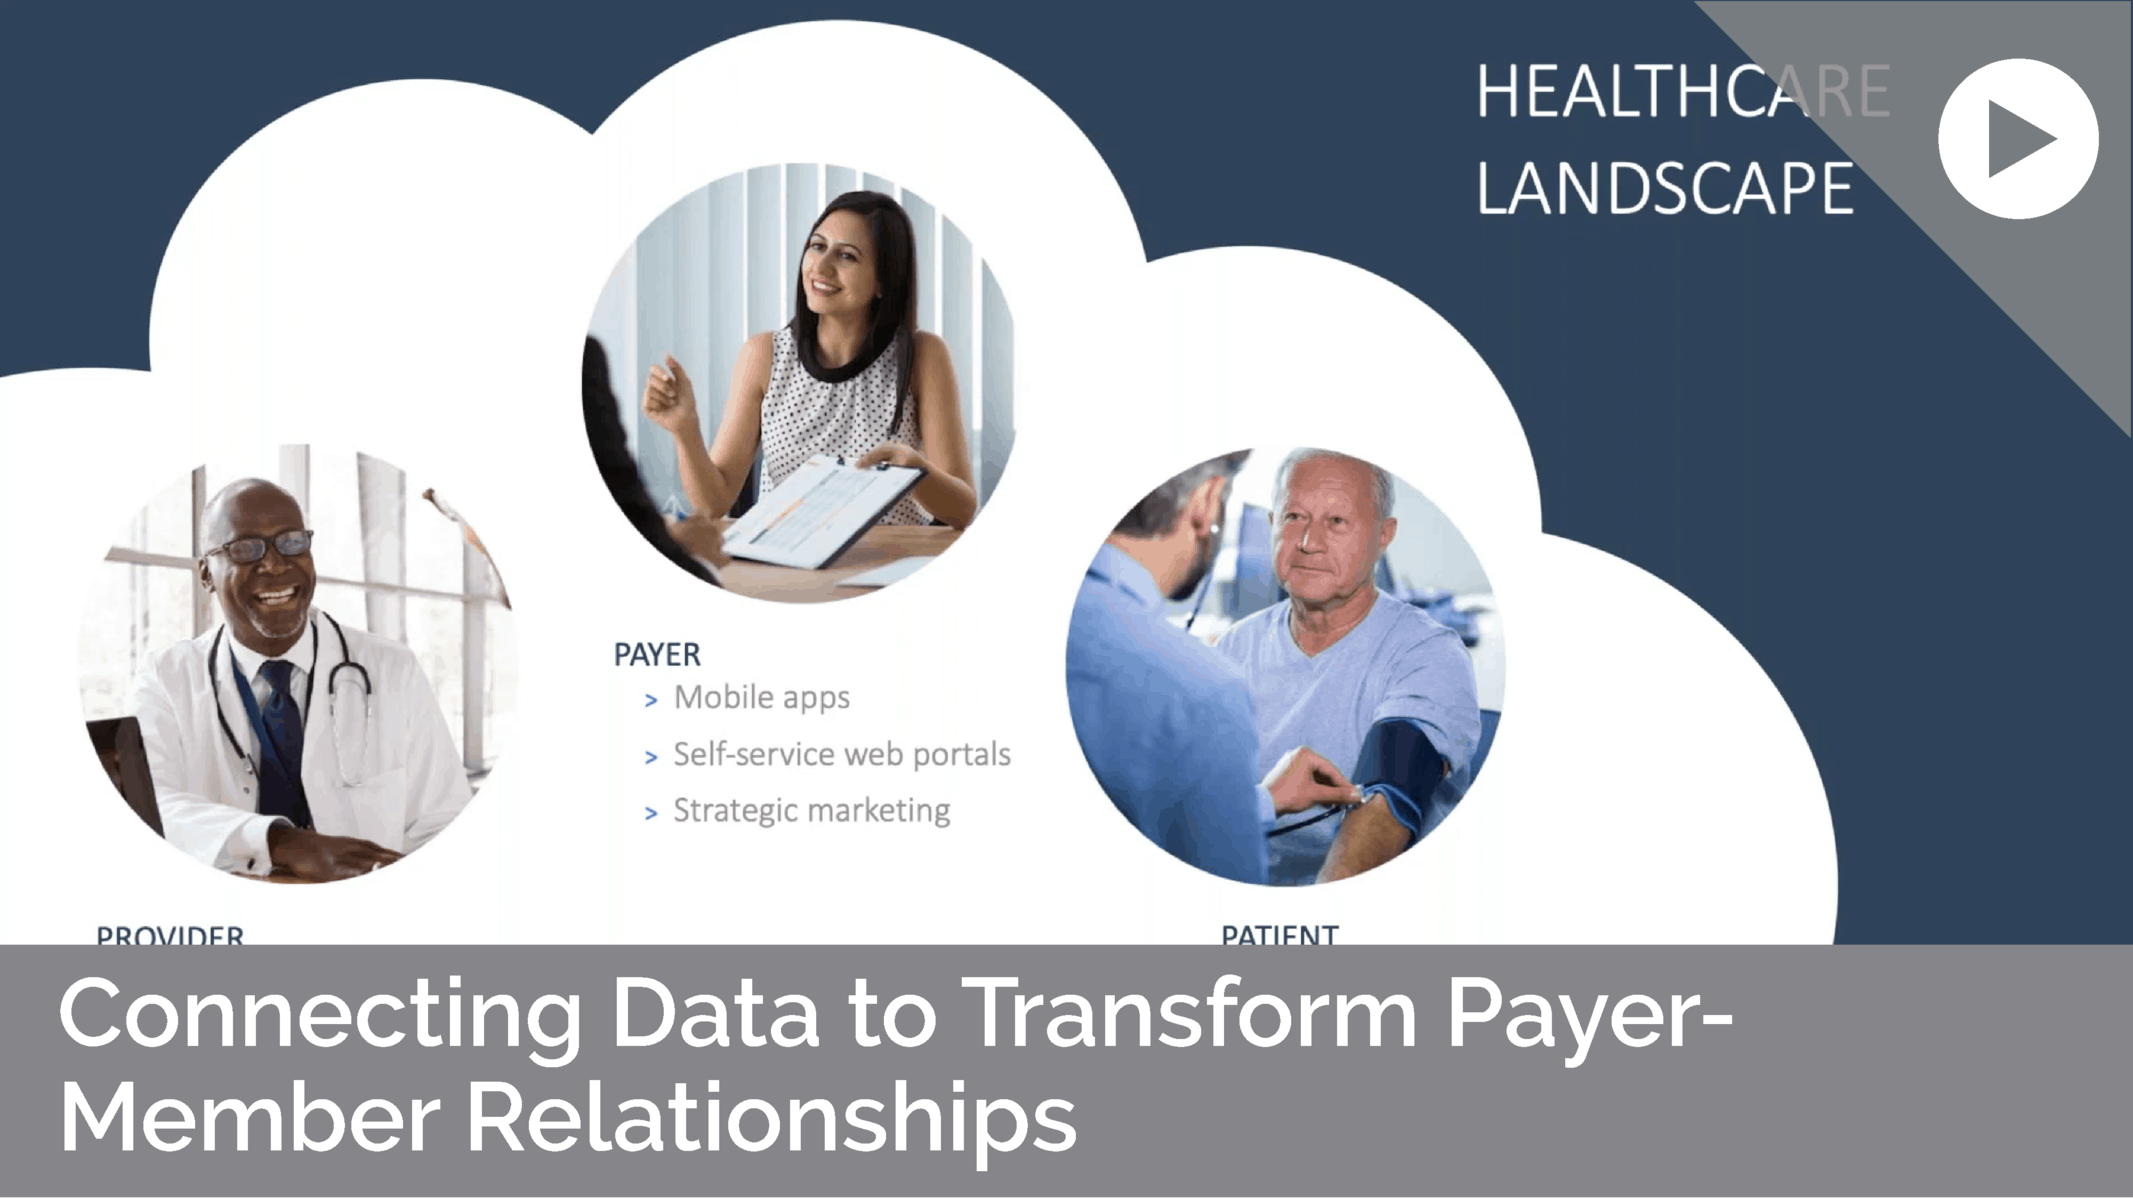 Connecting Data to Transform Payer-Member Relationships